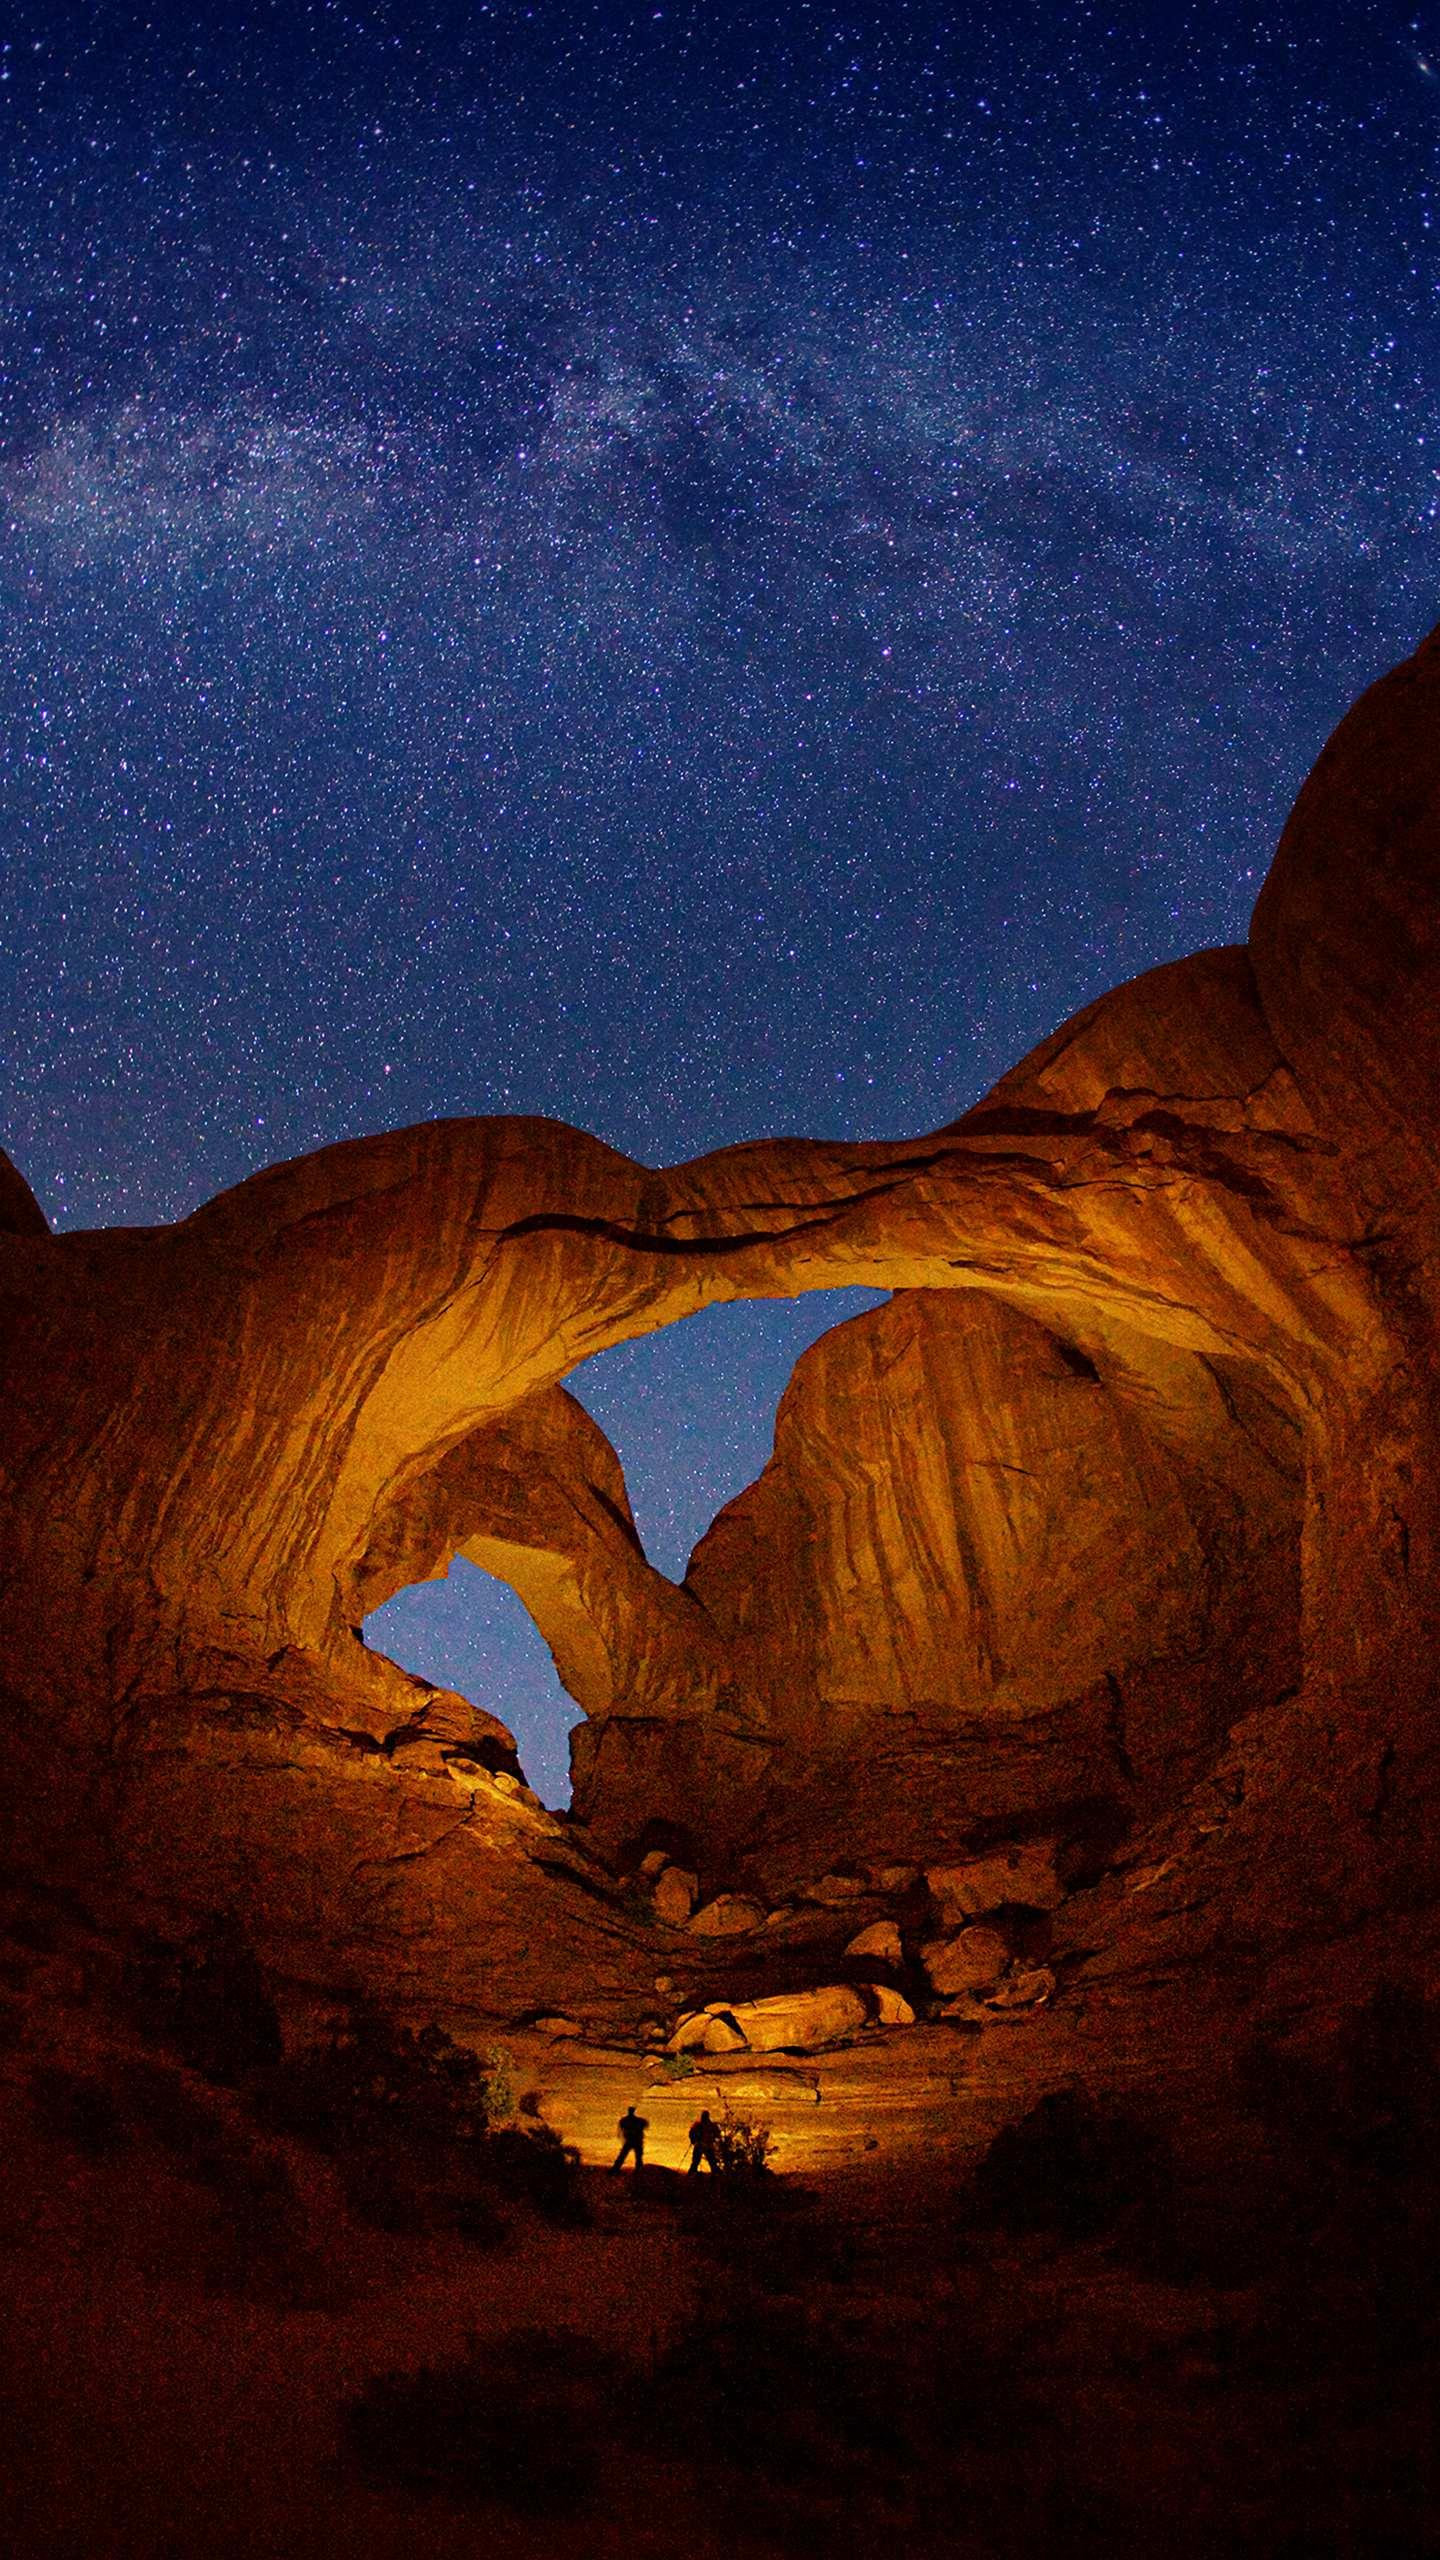 Arches National Park. It is the world's largest arch-like natural sandstone concentration, and the magical power of nature has made it here.